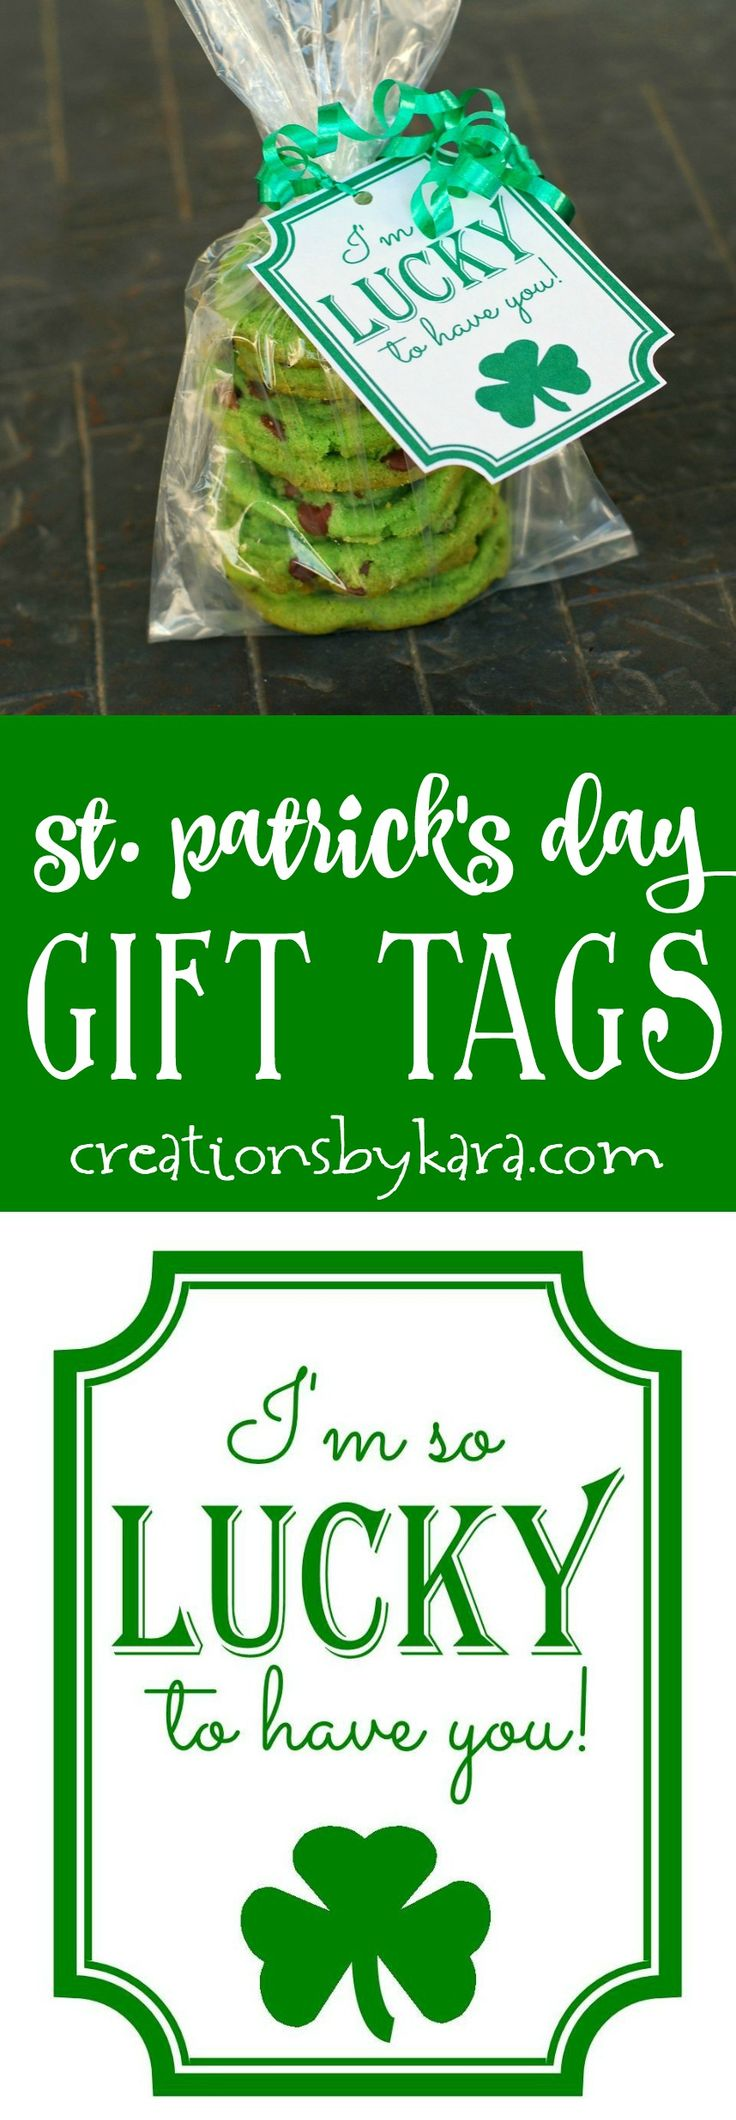 St Patricks Day Gift tags - use these free printable clover gift tags for your favorite leprechauns! A great St. Patrick's day gift idea.